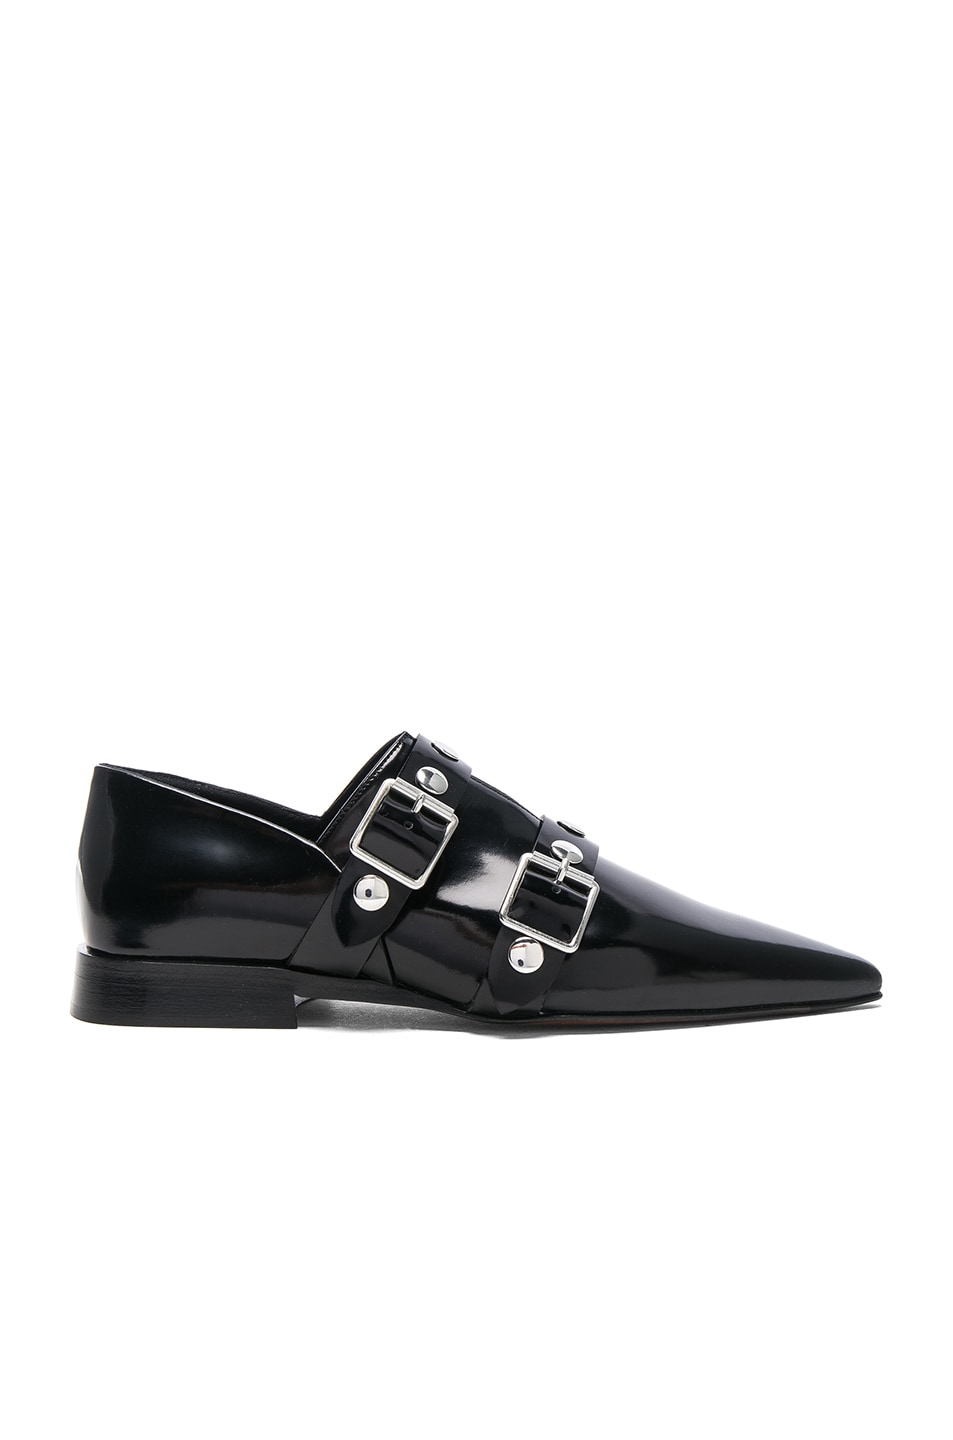 Image 1 of Victoria Beckham Leather Buckle Flats in Black